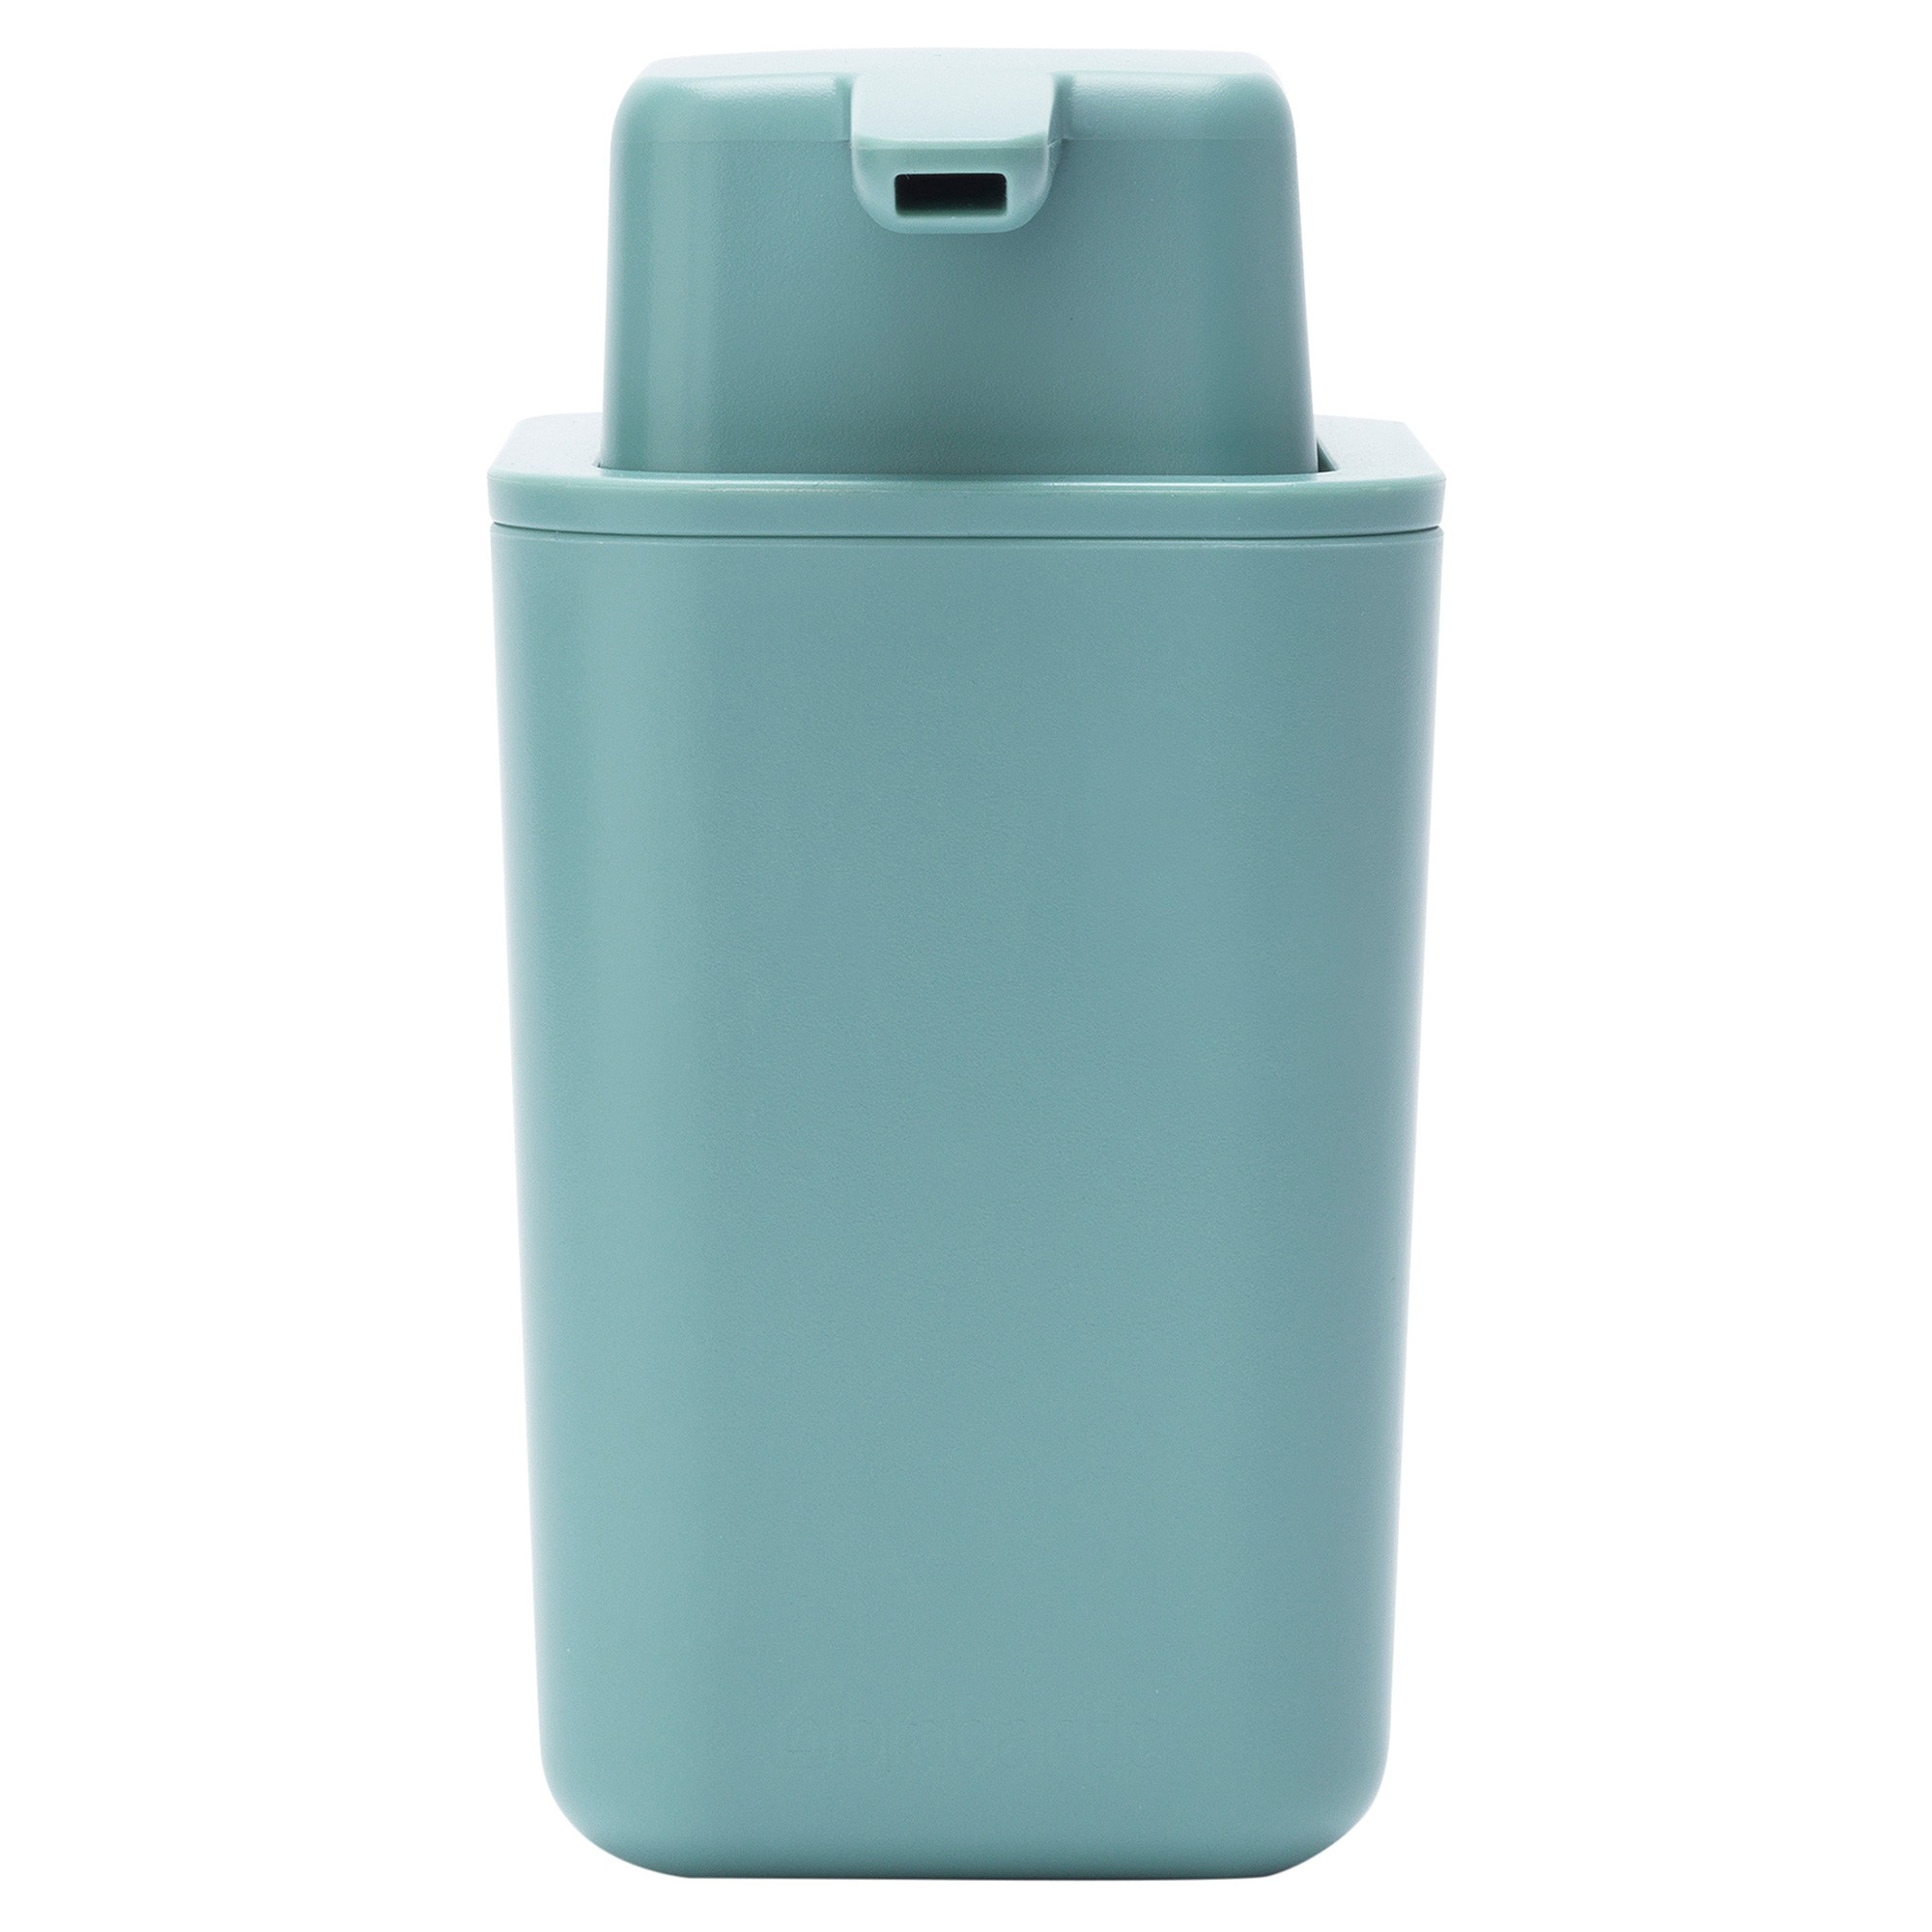 Brabantia Kitchen Soap Dispenser, Mint